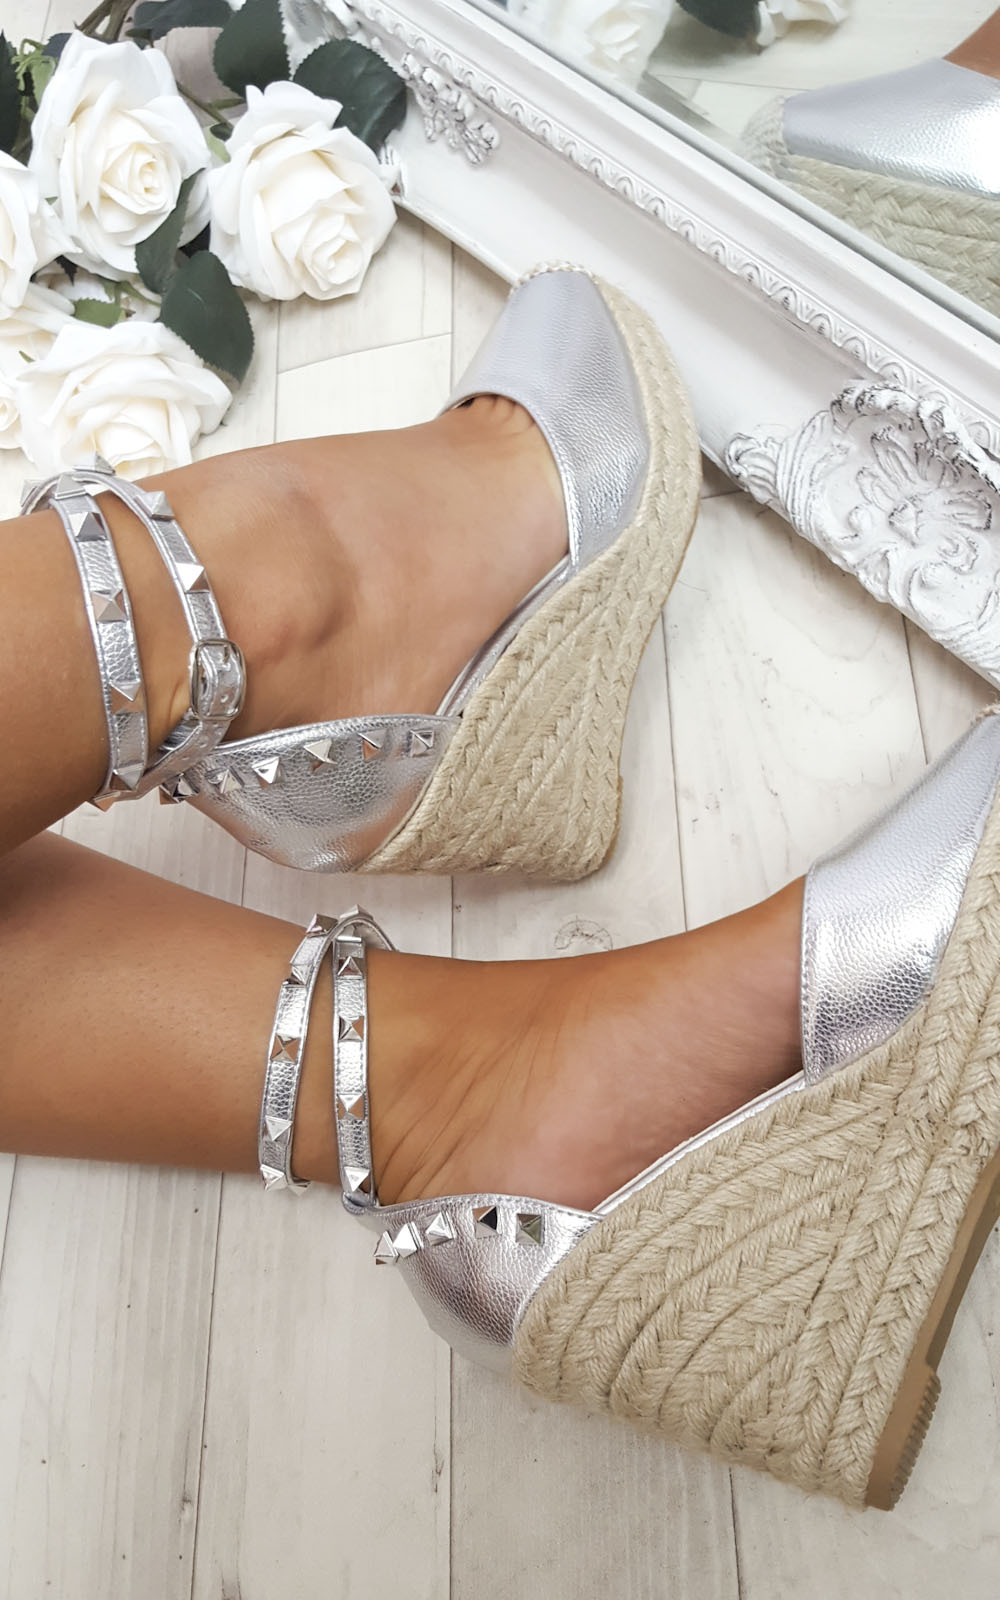 IKRUSH-Women-039-s-Hetti-Studded-Ankle-Strap-Espadrille-Wedges-Size-in-SILVER-Size